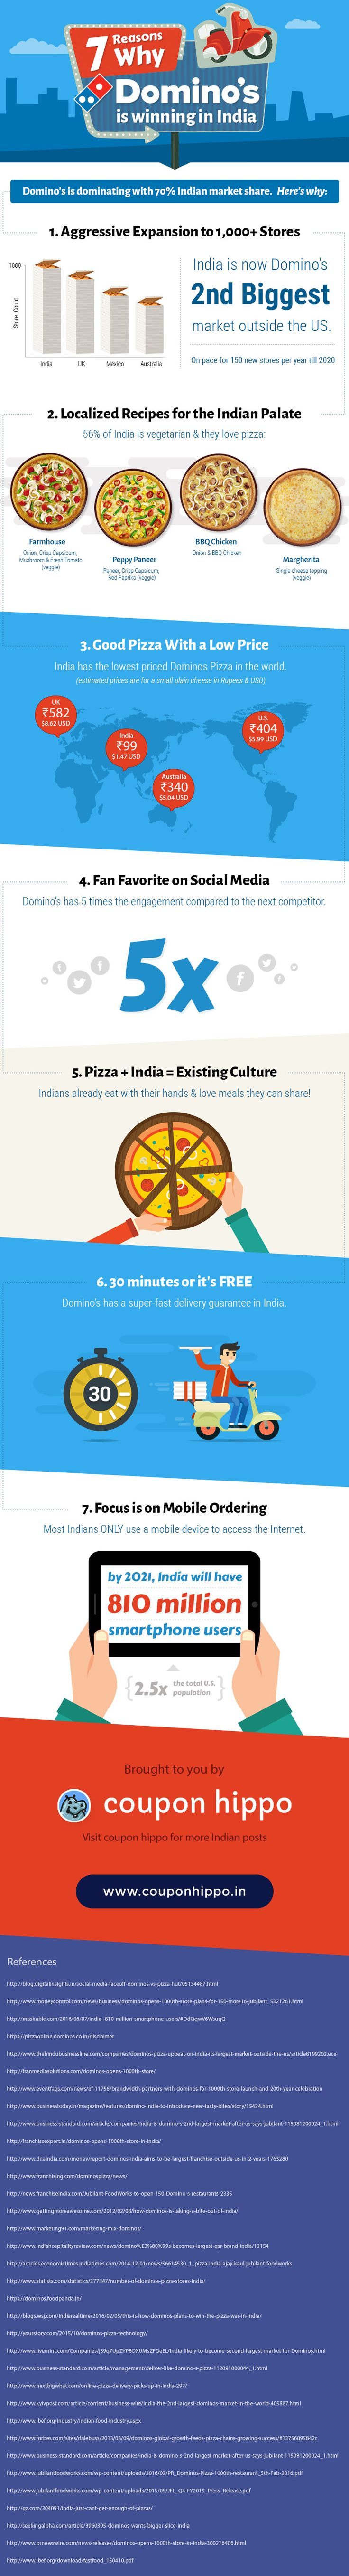 Dominos pizza coupons retailmenot - 7 Reason S Why Domino S Is Winning In India Infographic